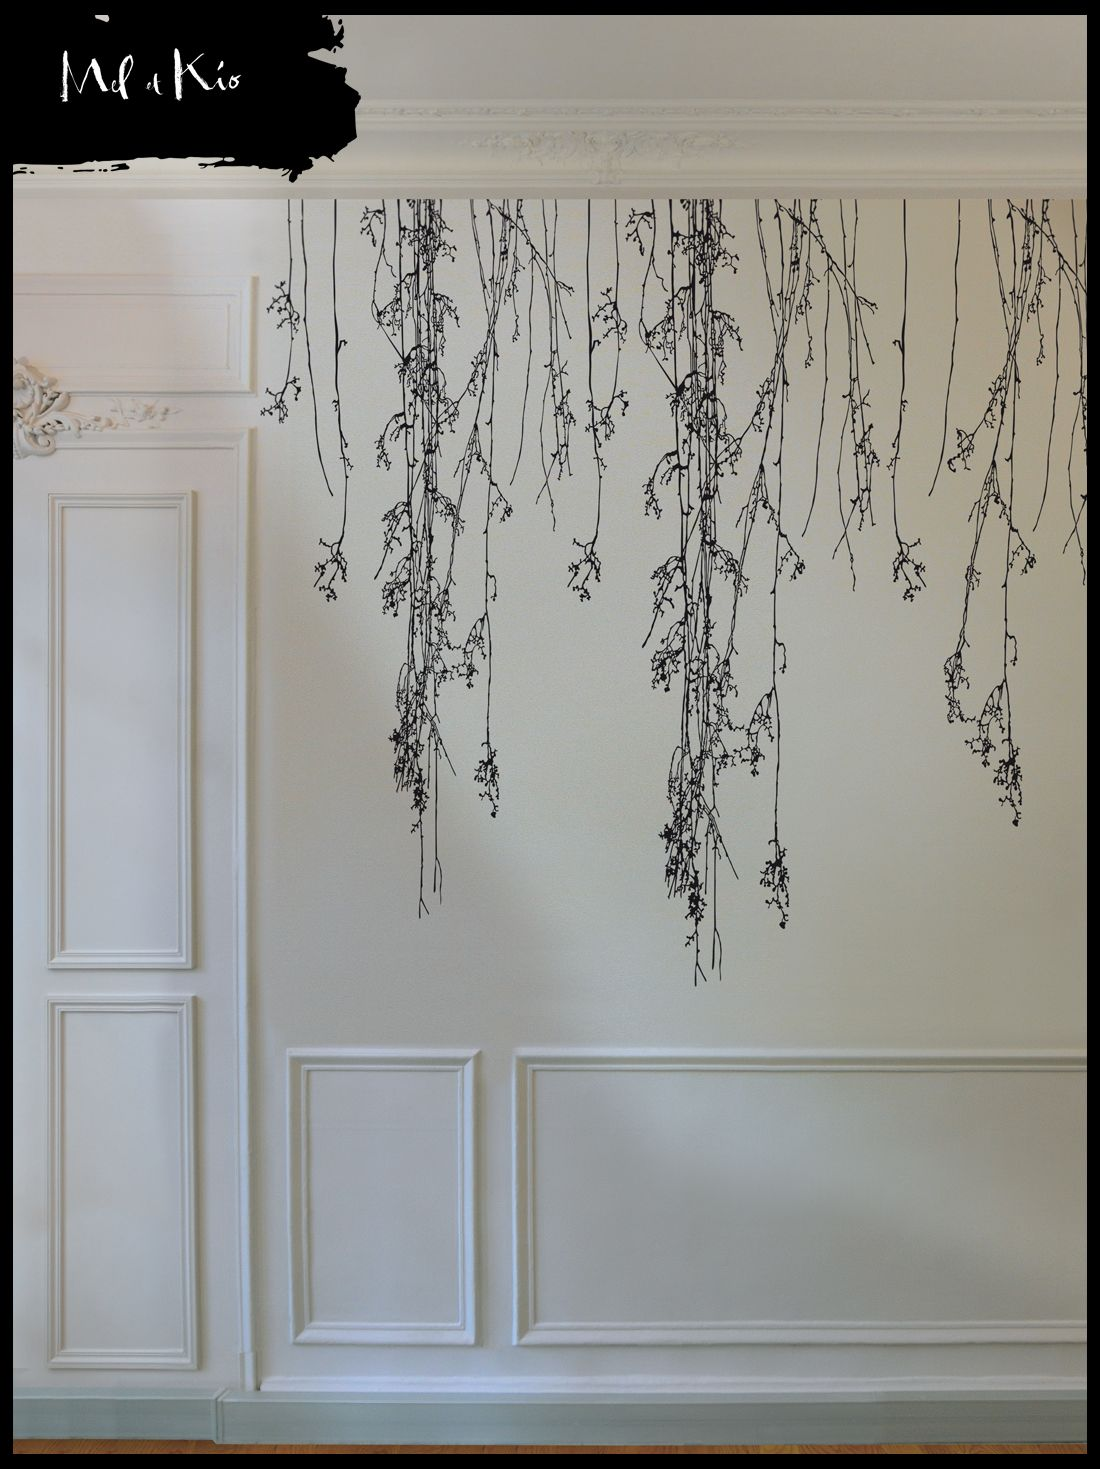 Sticker Mural Haut De Gamme Grand Format Murmures © U0026 Variations « Sonate  Du0027hiver » (Composition XL) « Poetic Wall